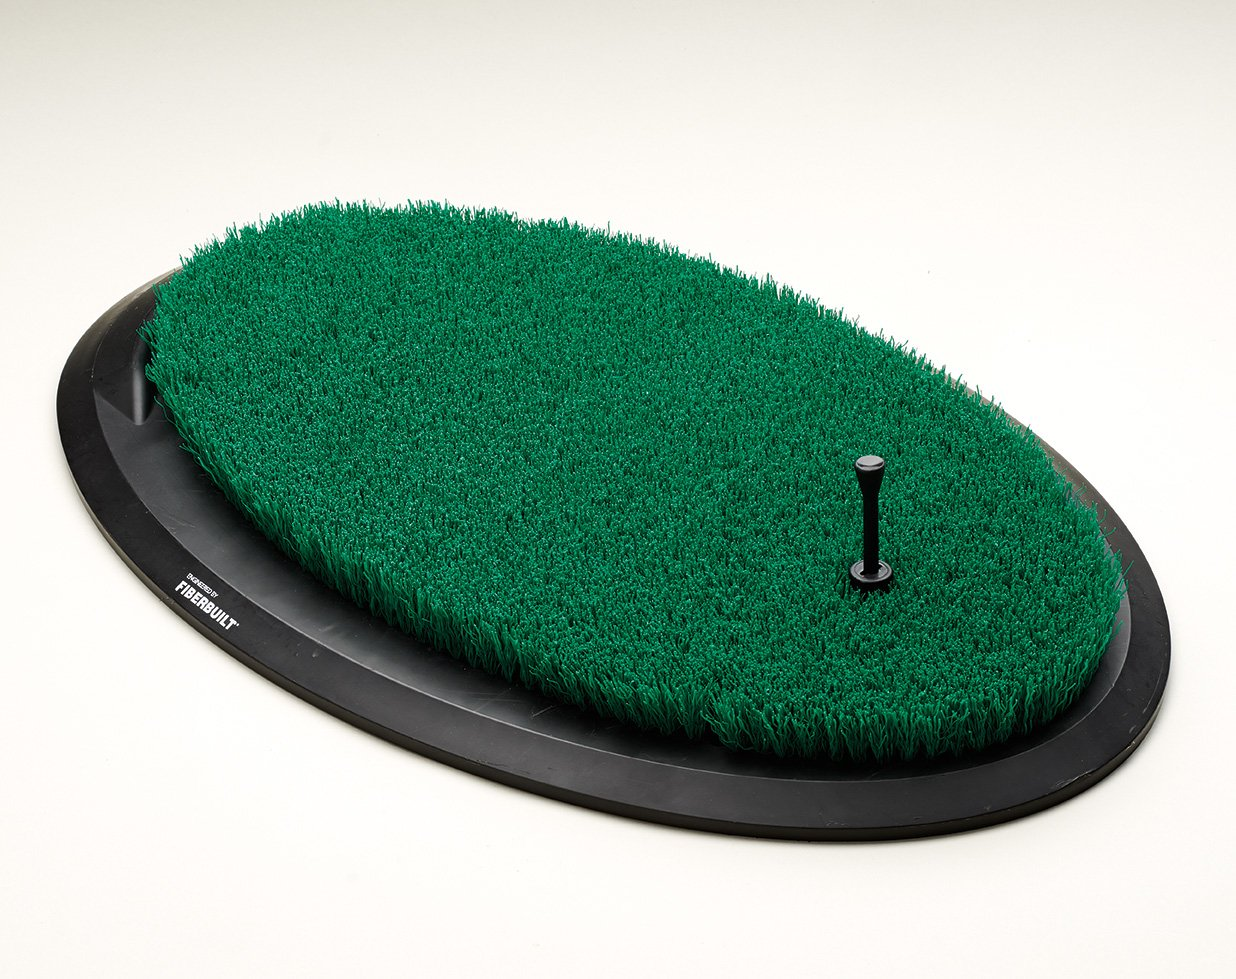 Fiberbuilt Flight Deck Golf Hitting Mat - Oval Shape Outdoor/Indoor Real Grass-Like Performance Golf Mat with Durable Adjustable Height Tee, Black/Green, 21.25'' x 13.5'' x 1.75''